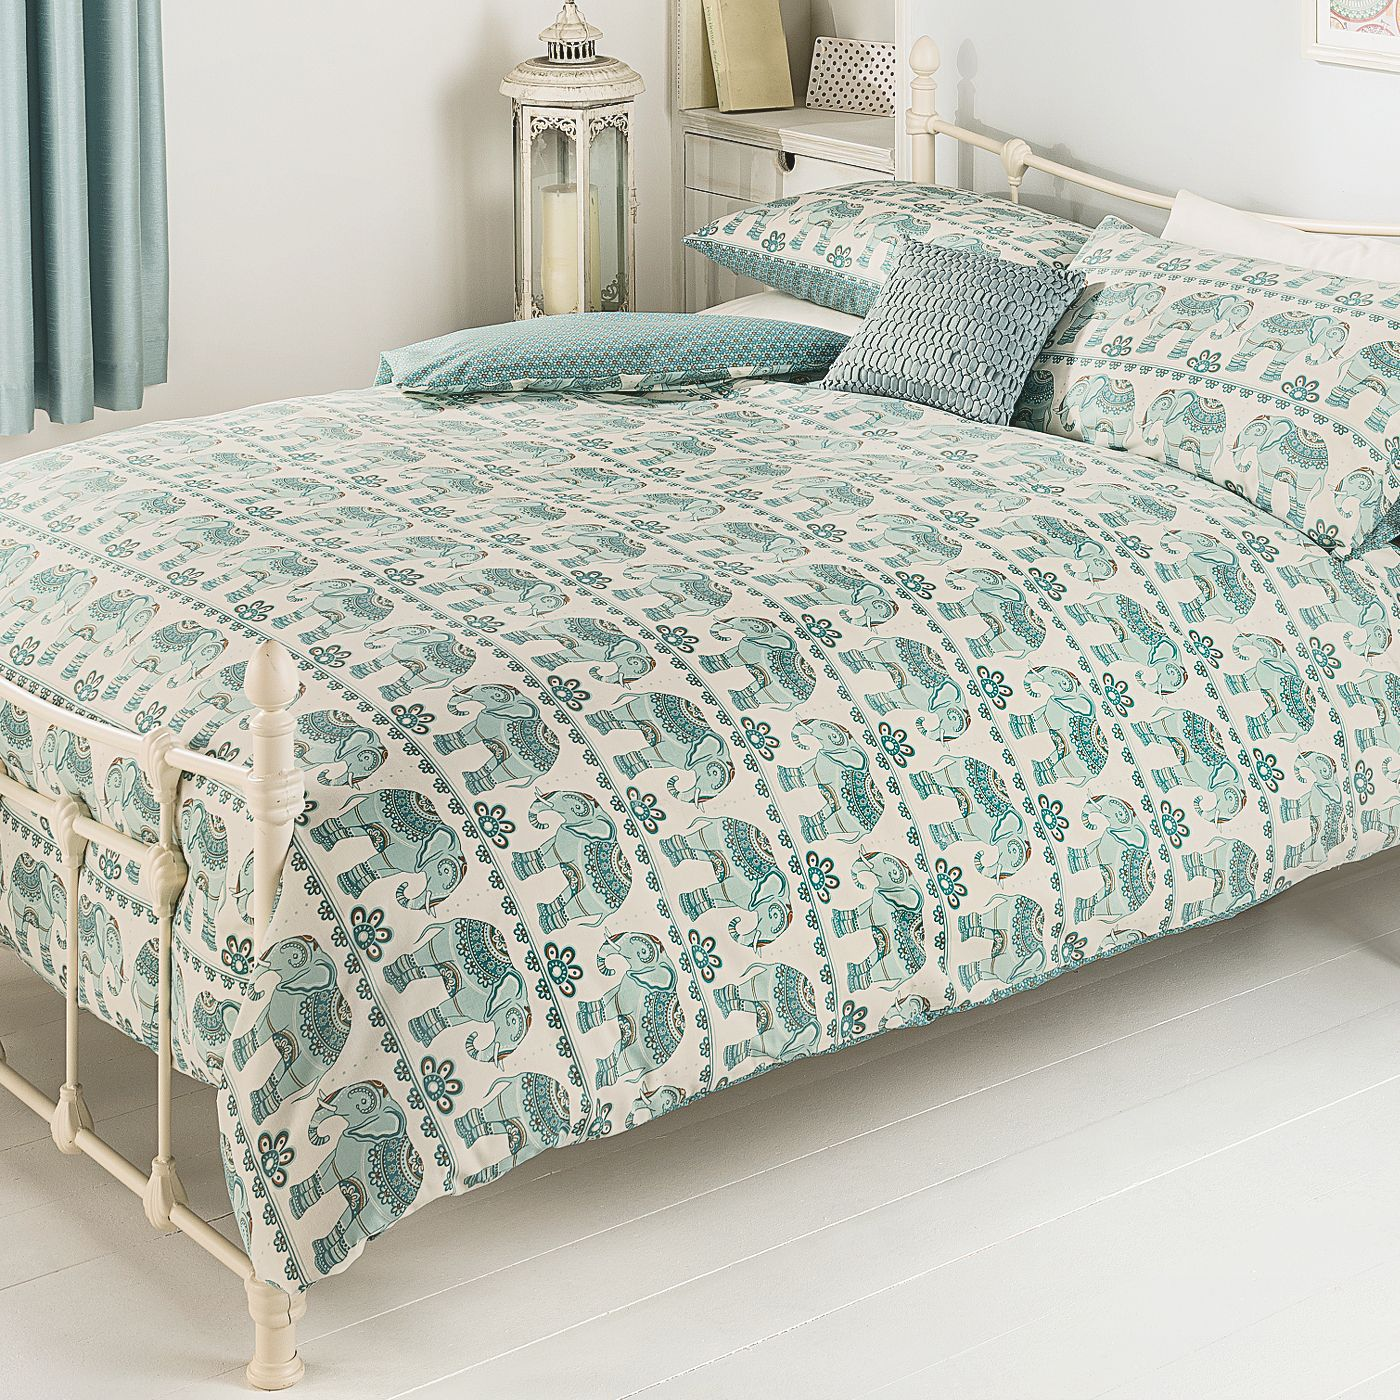 Well Suited Ideas Single Duvet Asda Cover Theamphletts Com